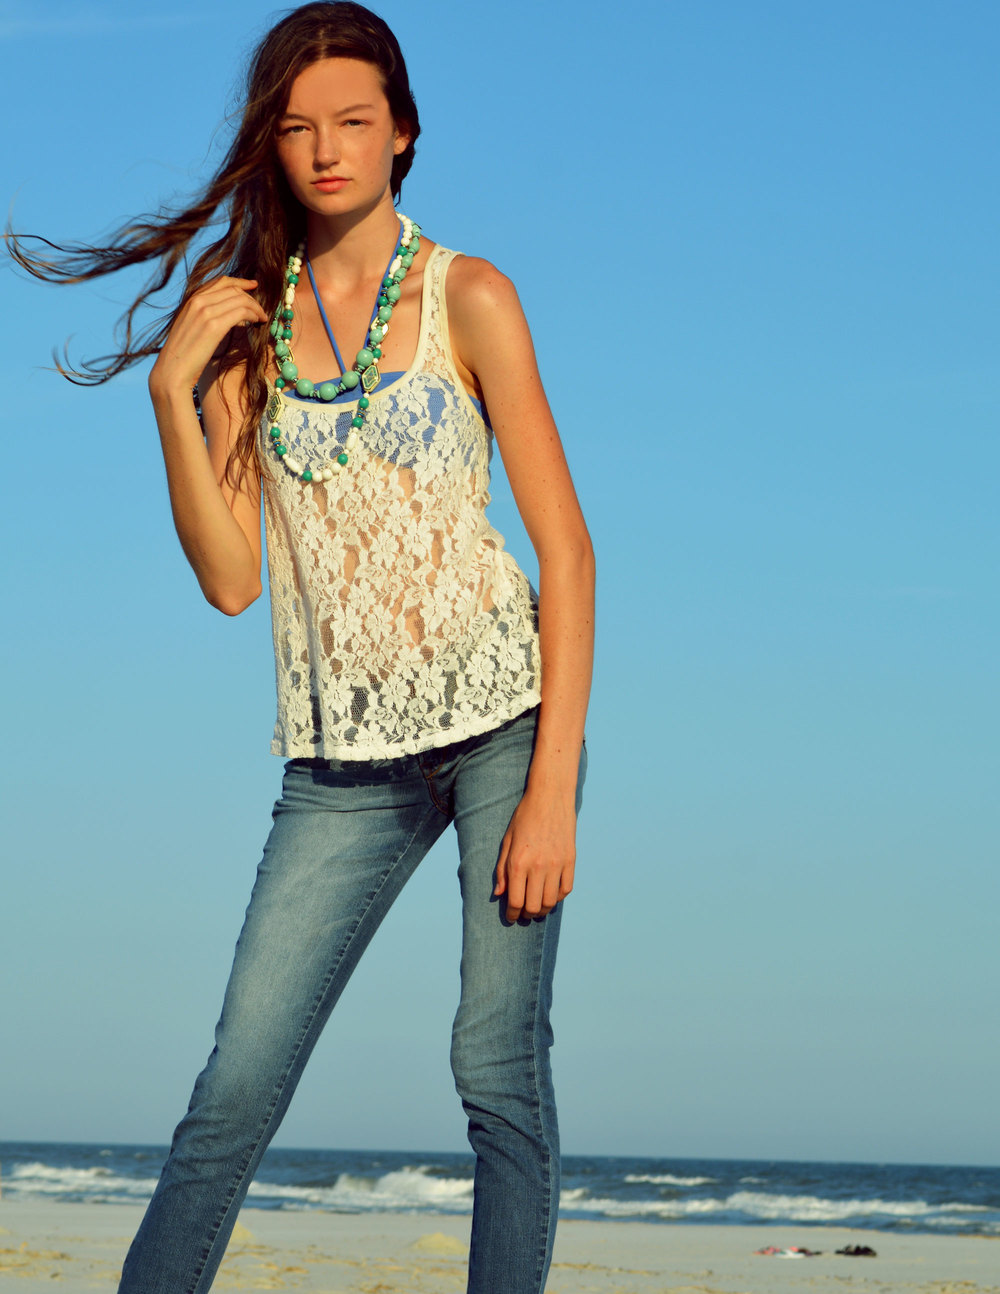 Angies-Closet_Ceara_Lace-Top-and-Jewelry-WEB.jpg